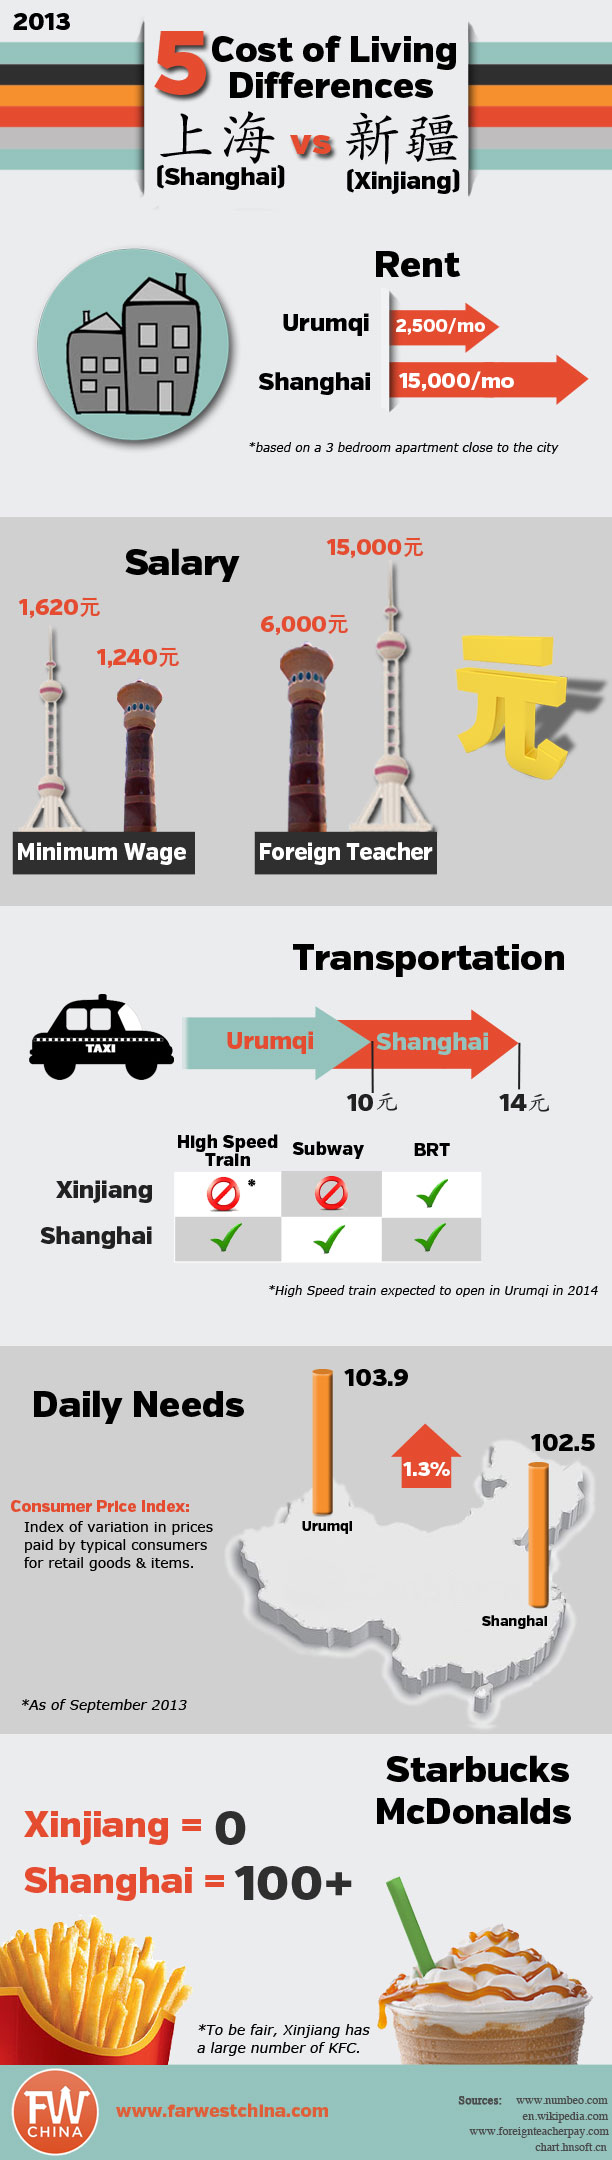 cost of living difference by state [Xinjiang vs Shanghai]